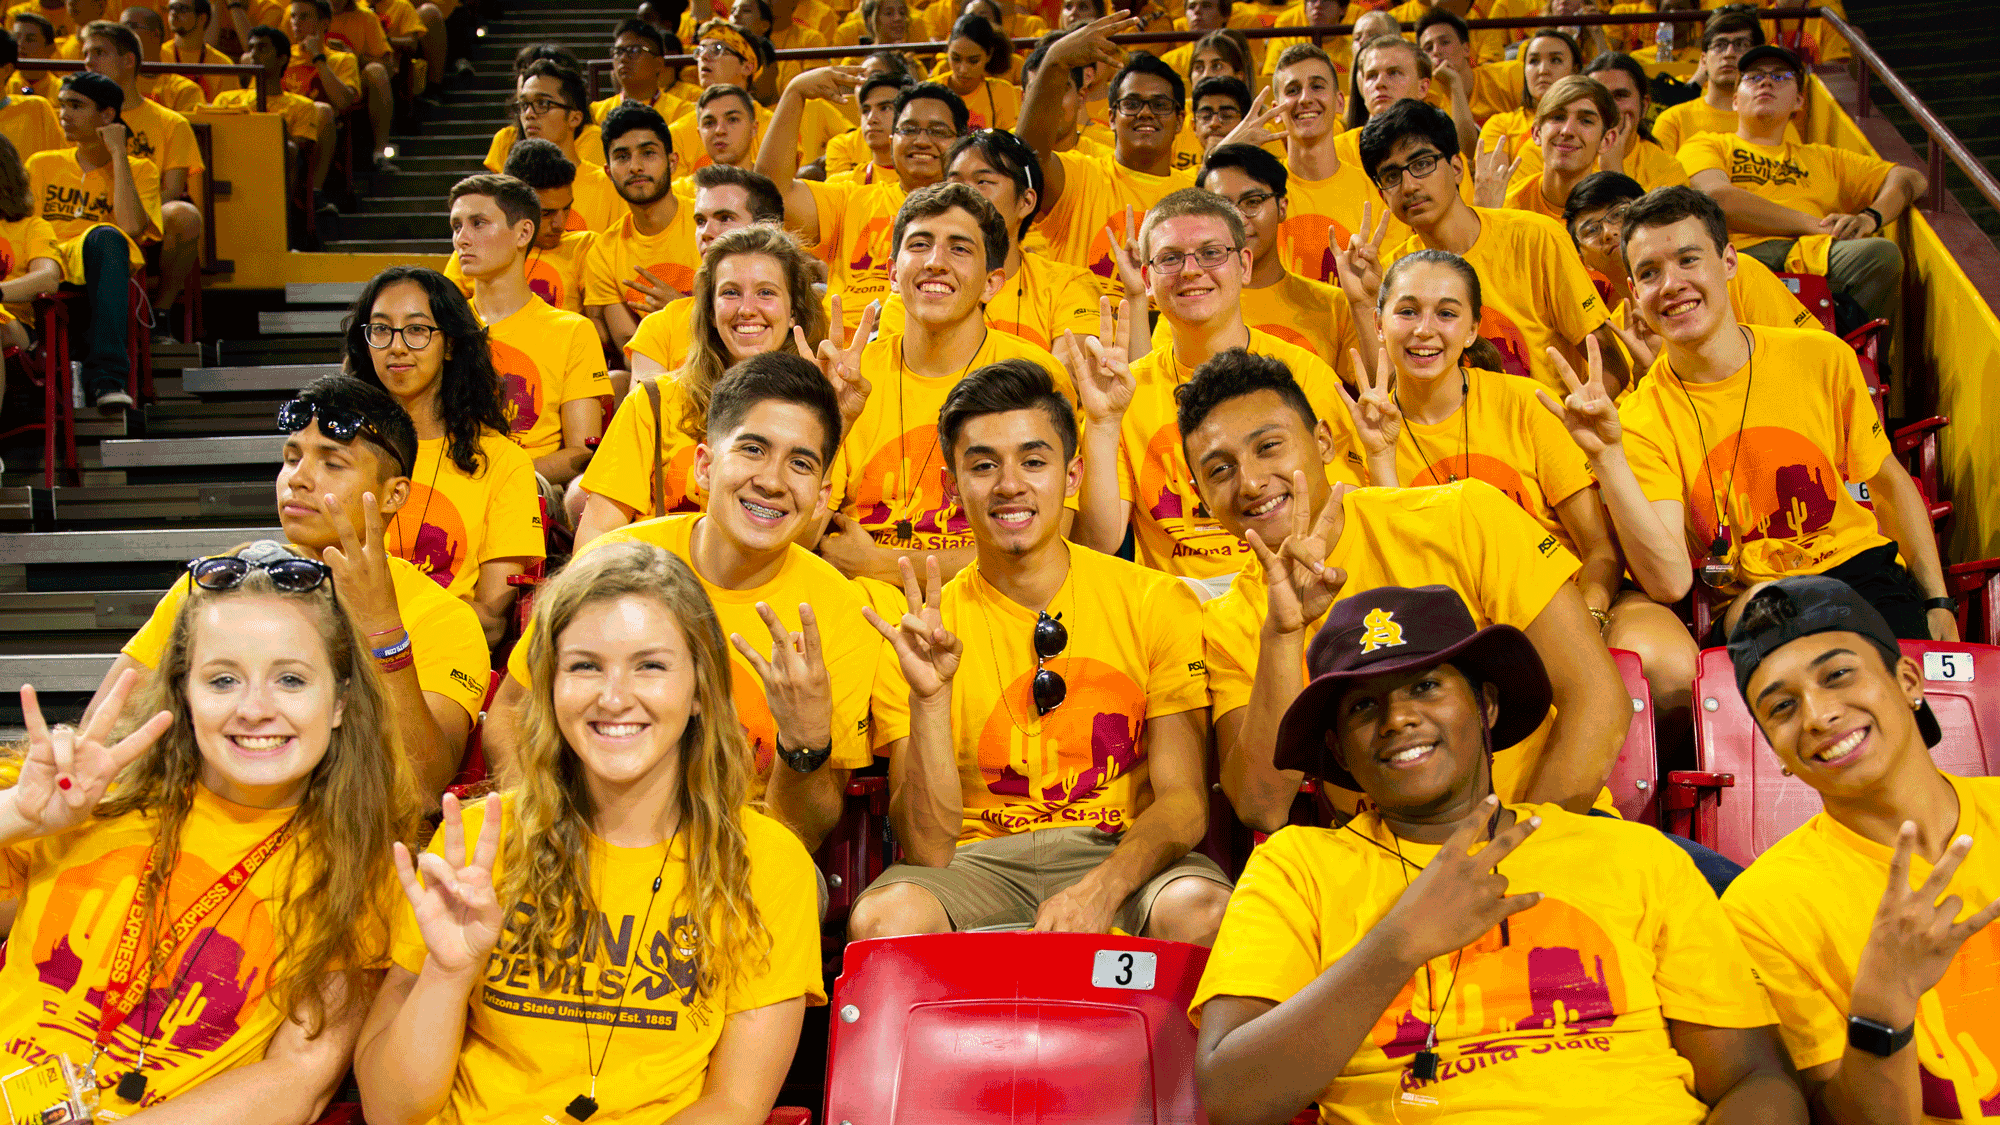 A large group of students sit in the stands of Wells Fargo arena at the Fall Welcome, smiling for the camera and making the ASU pitchfork gesture